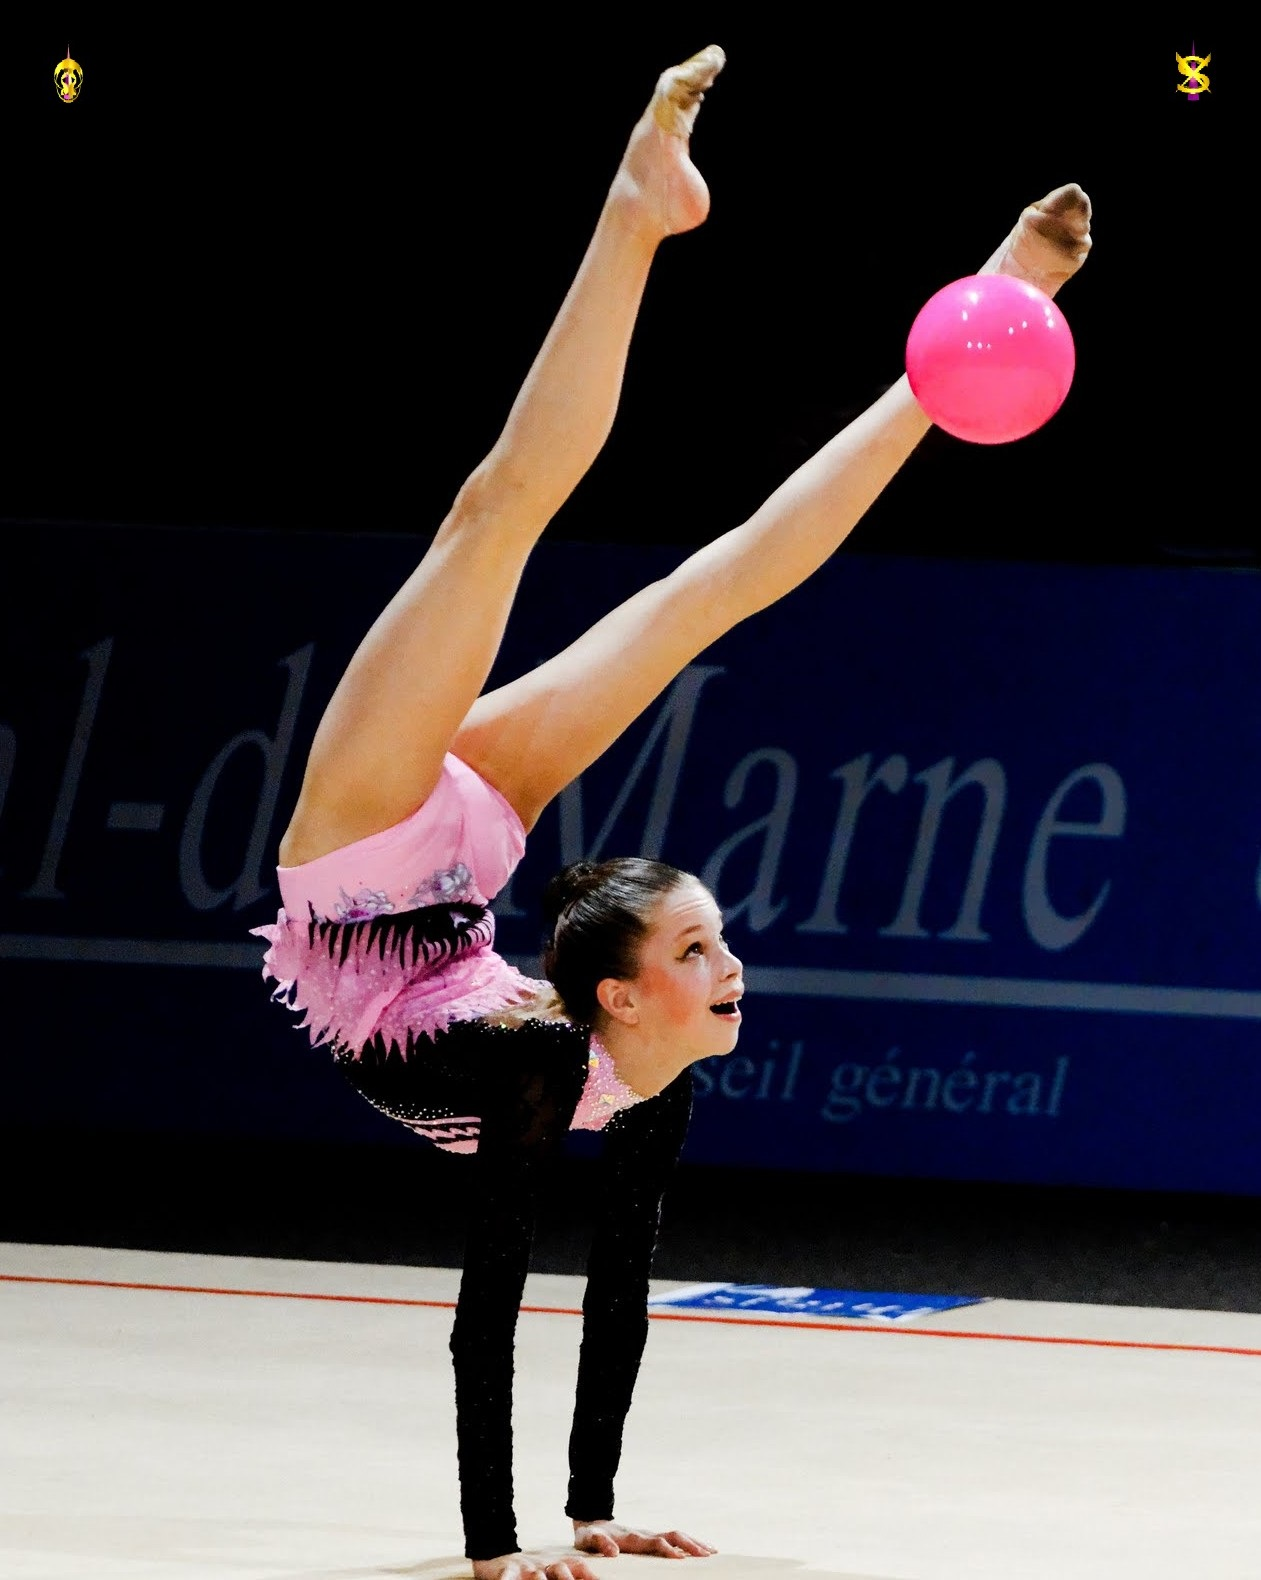 Nation of XI's Femme Fatales of Russia! Rythmic Gymnastics!